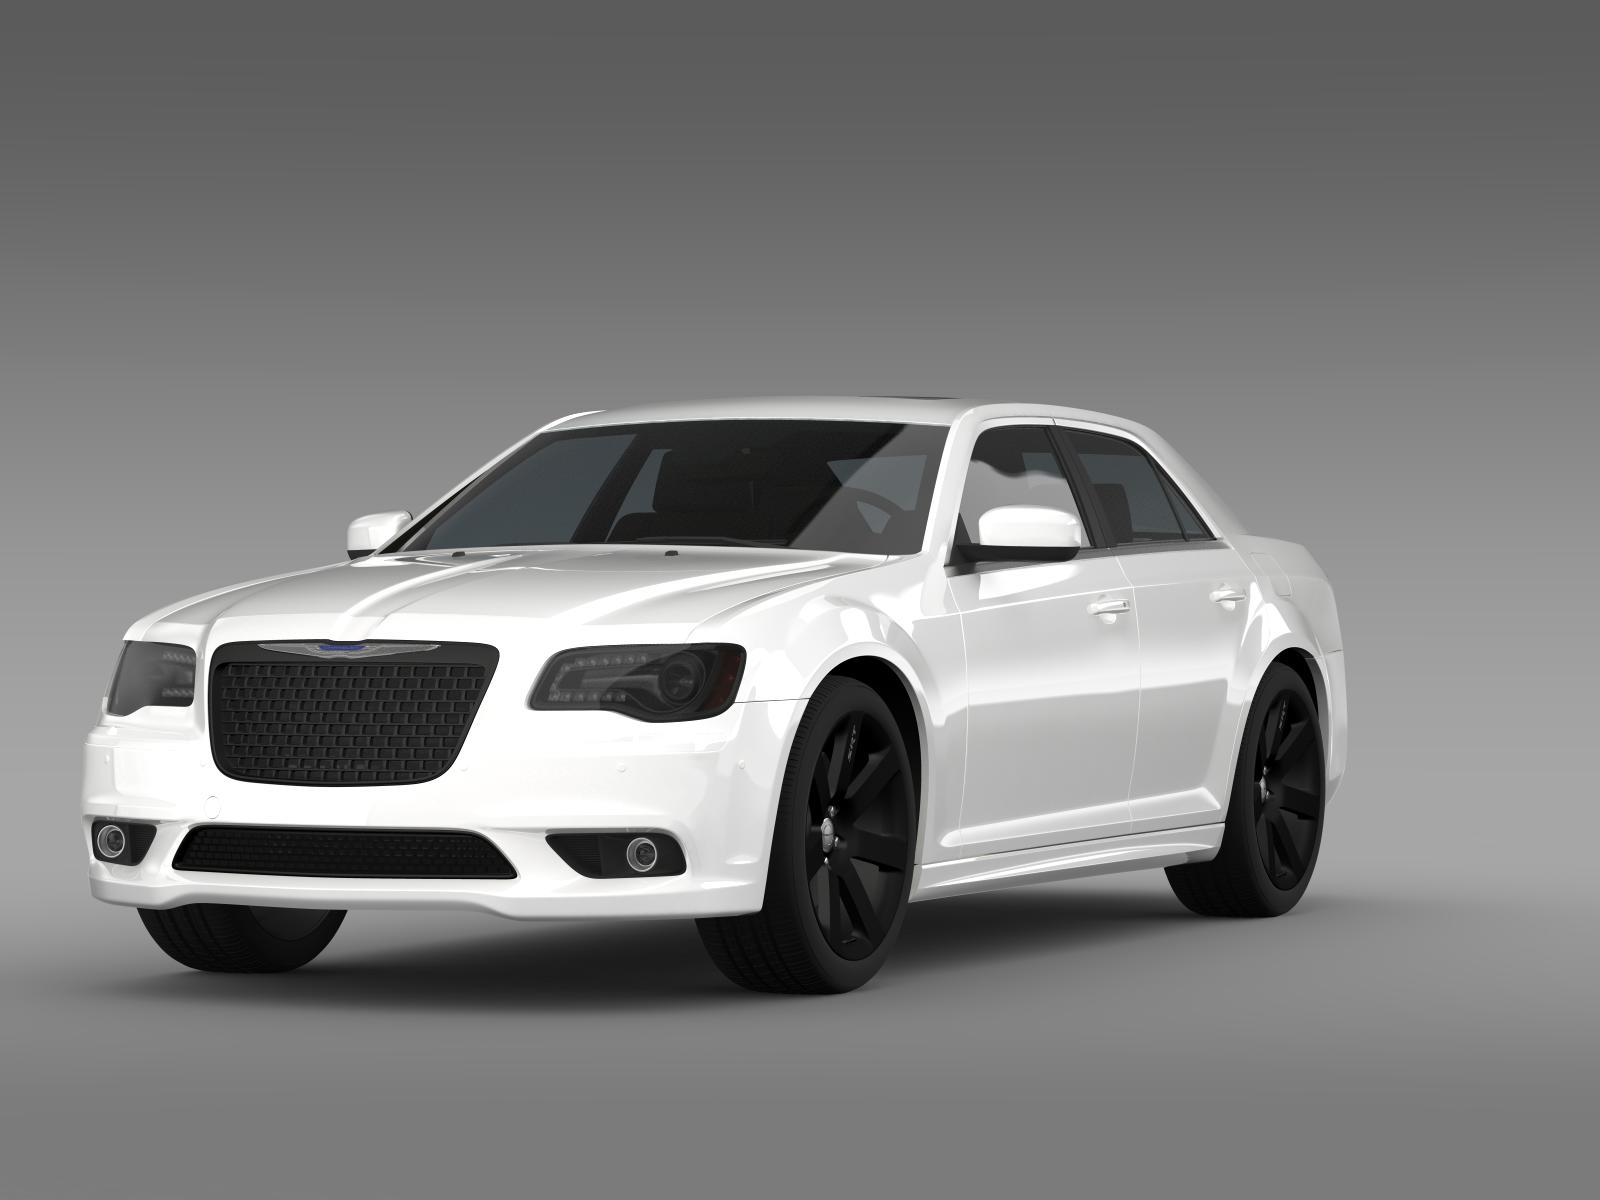 chrysler 300 srt8 2012 3d model buy chrysler 300 srt8. Black Bedroom Furniture Sets. Home Design Ideas